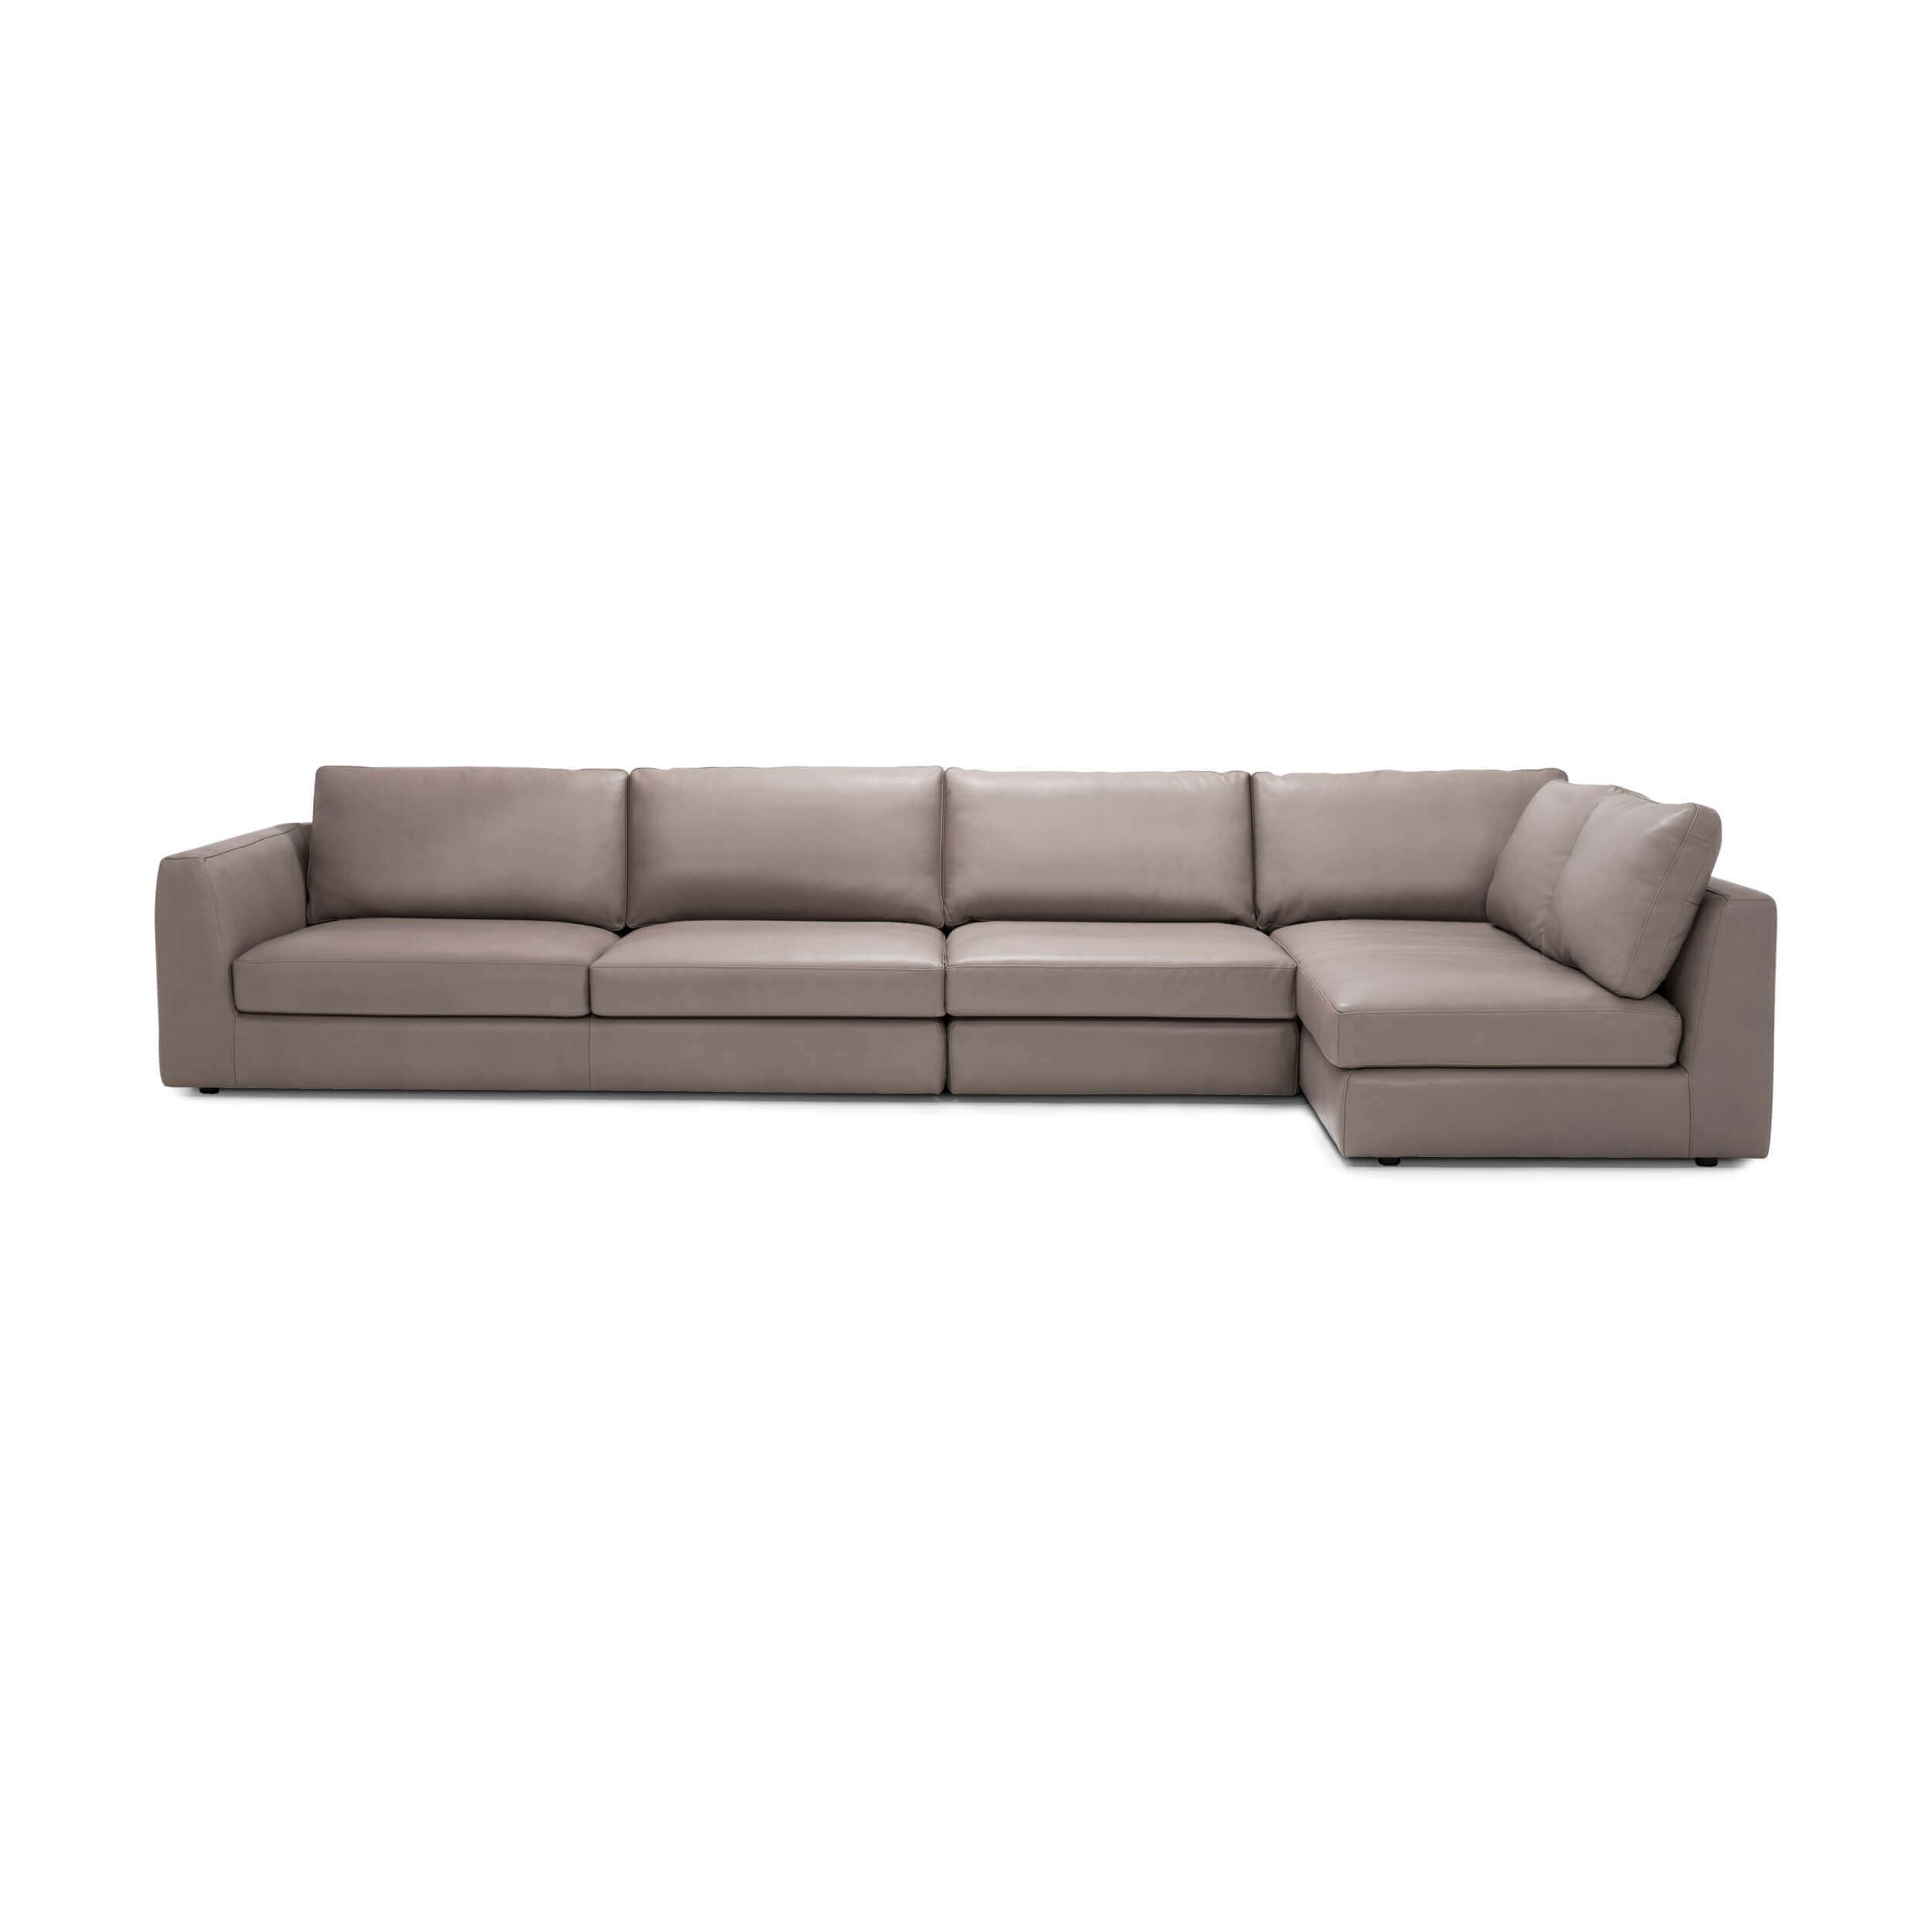 Cello 3-Piece Sectional Sofa with Full Arm Chaise - Leather